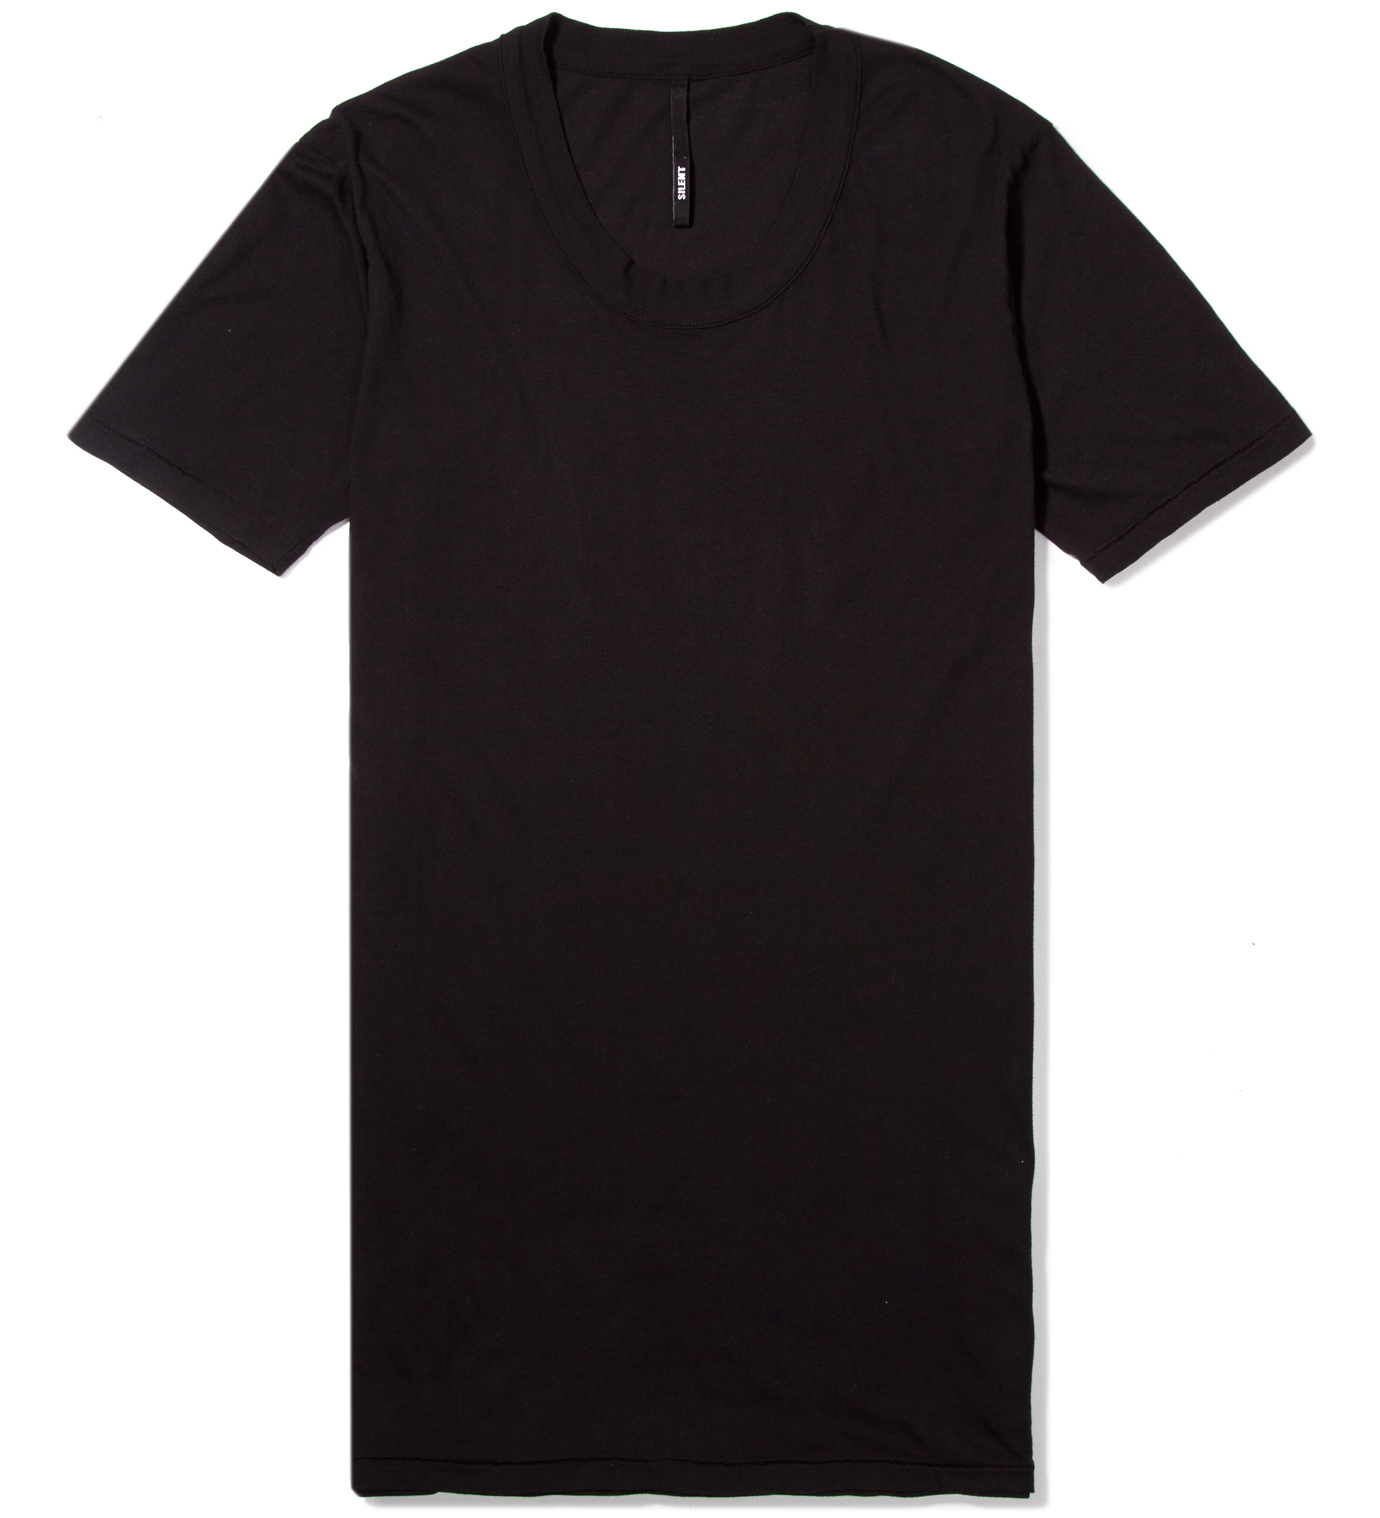 SILENT DAMIR DOMA Black Toba Oval Neck T-Shirt